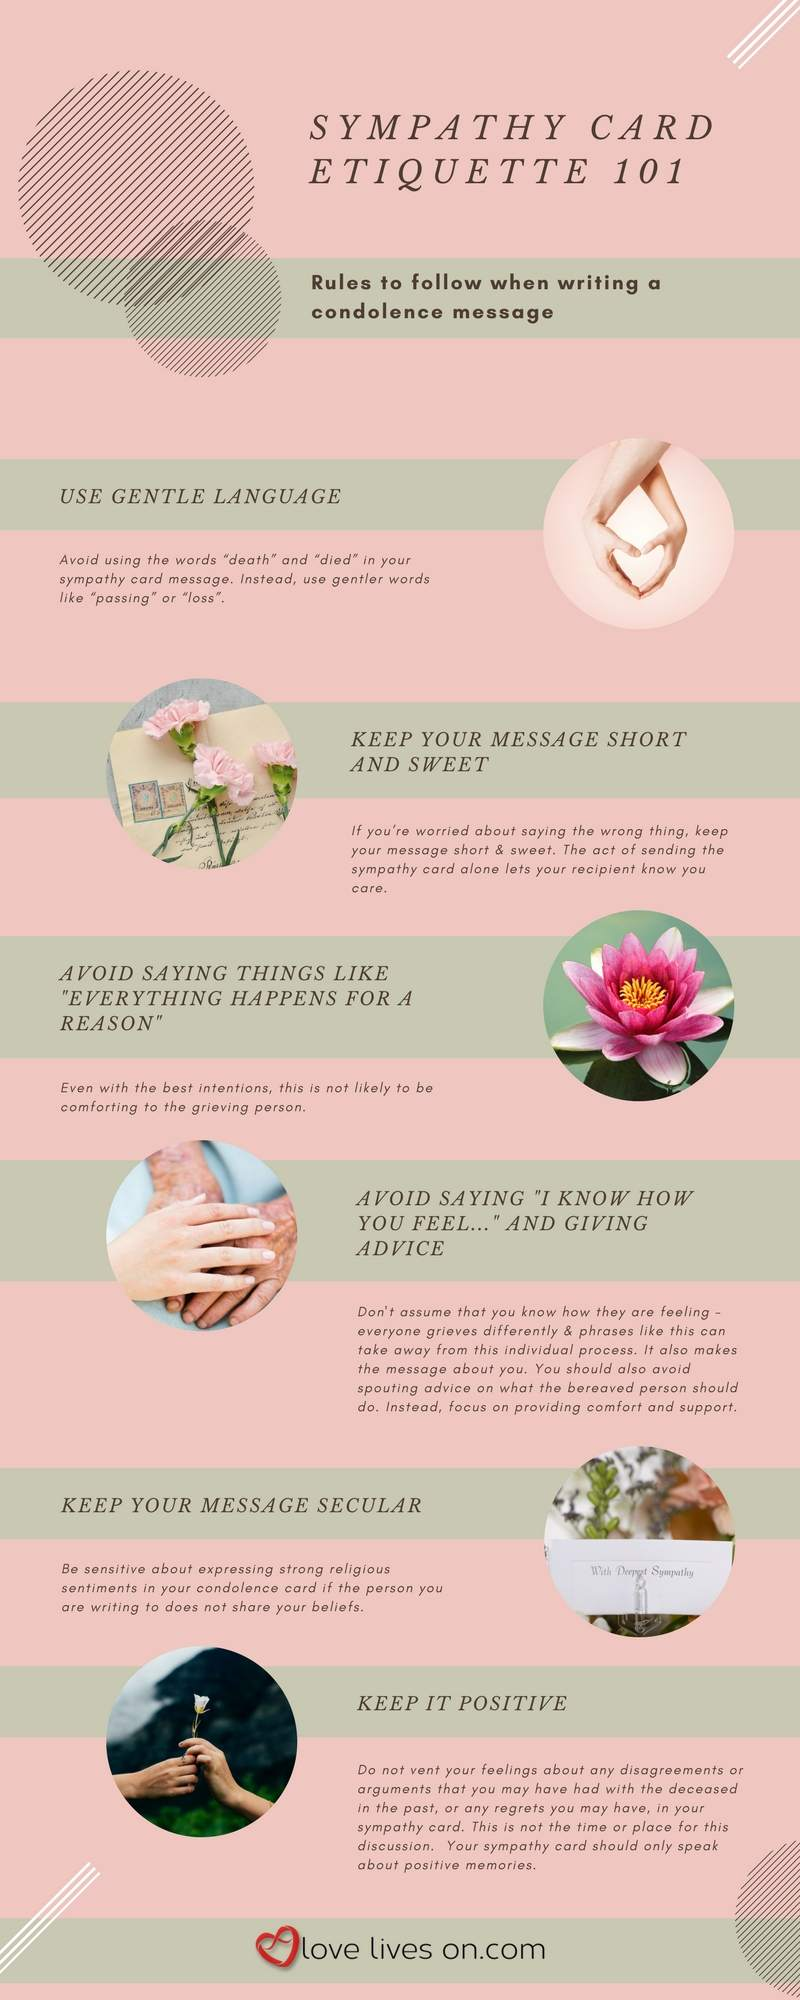 100 best sympathy quotes love lives on infographic sympathy card etiquette 101 izmirmasajfo Image collections